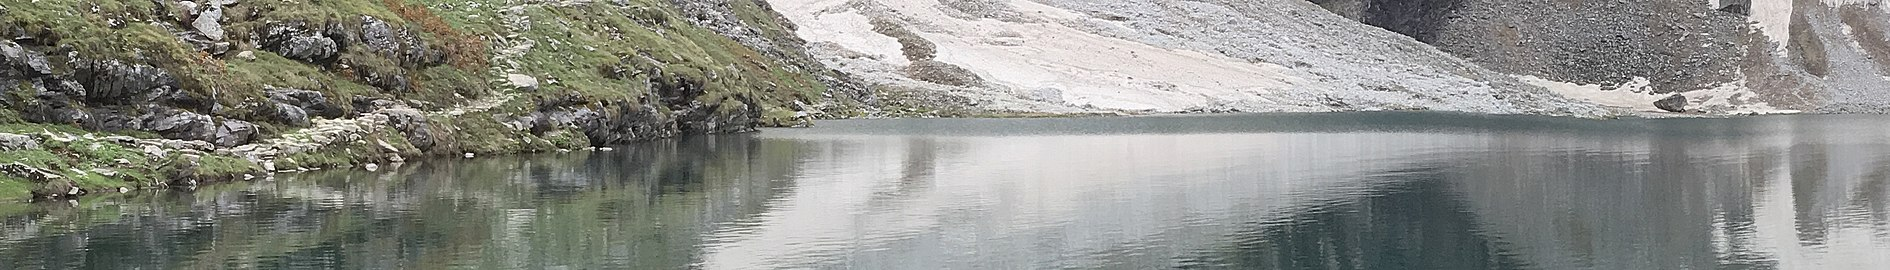 """""Reflection of Nanda Devi Hills on Hemkund Sahib Lake Chamoli, India"".jpg 05 (cropped).jpg"